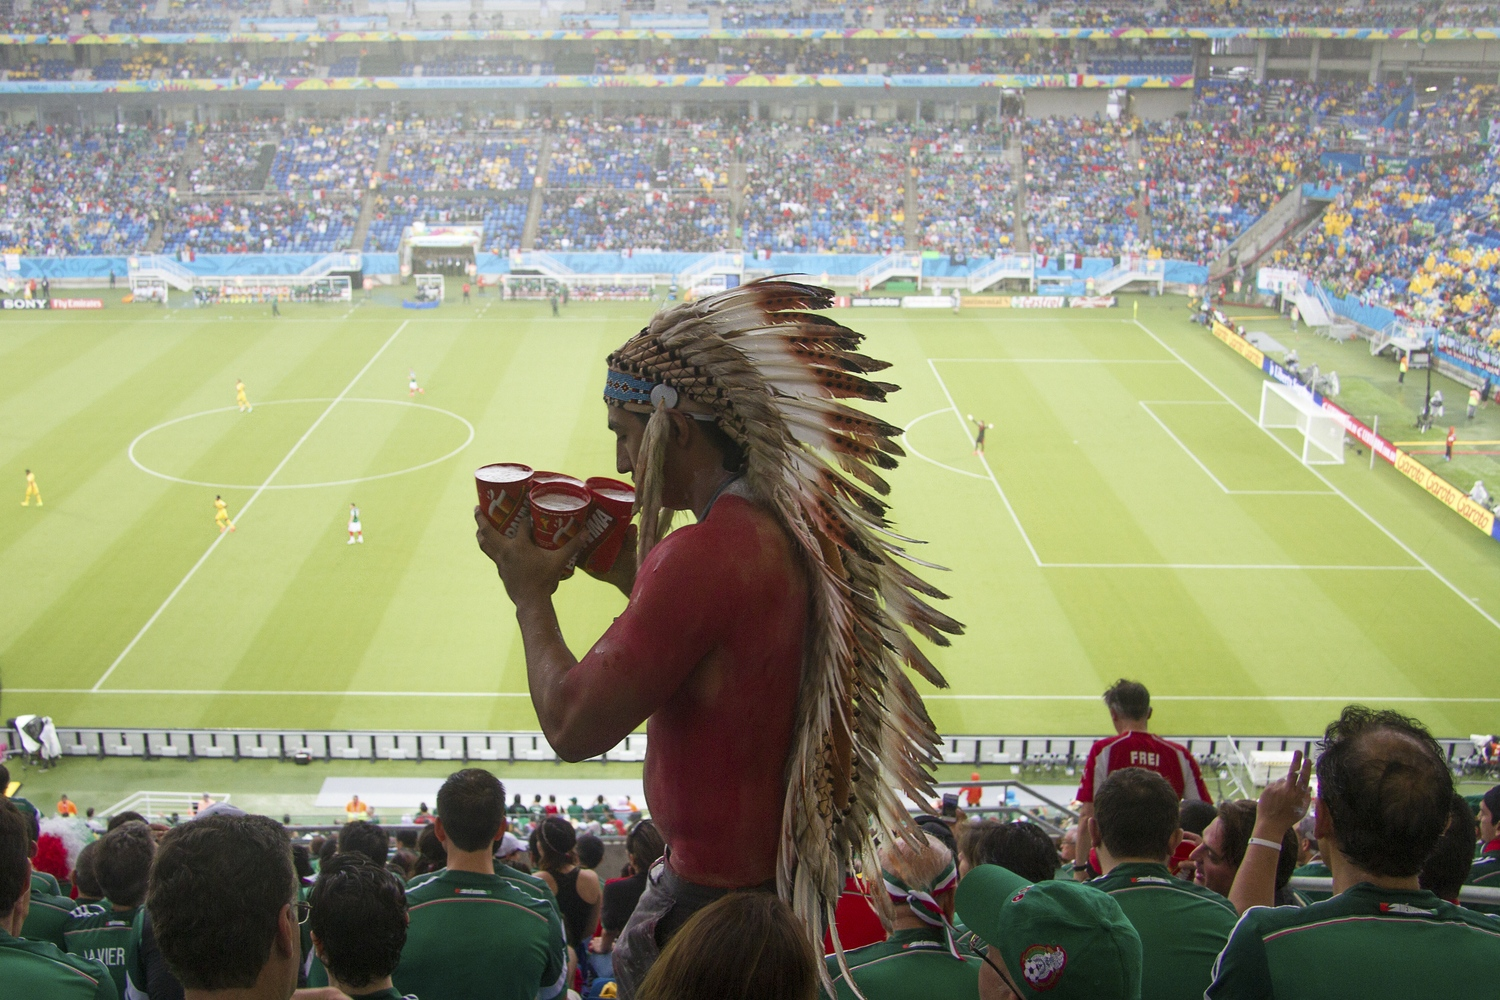 Mexico vs. Cameroon, 2014.